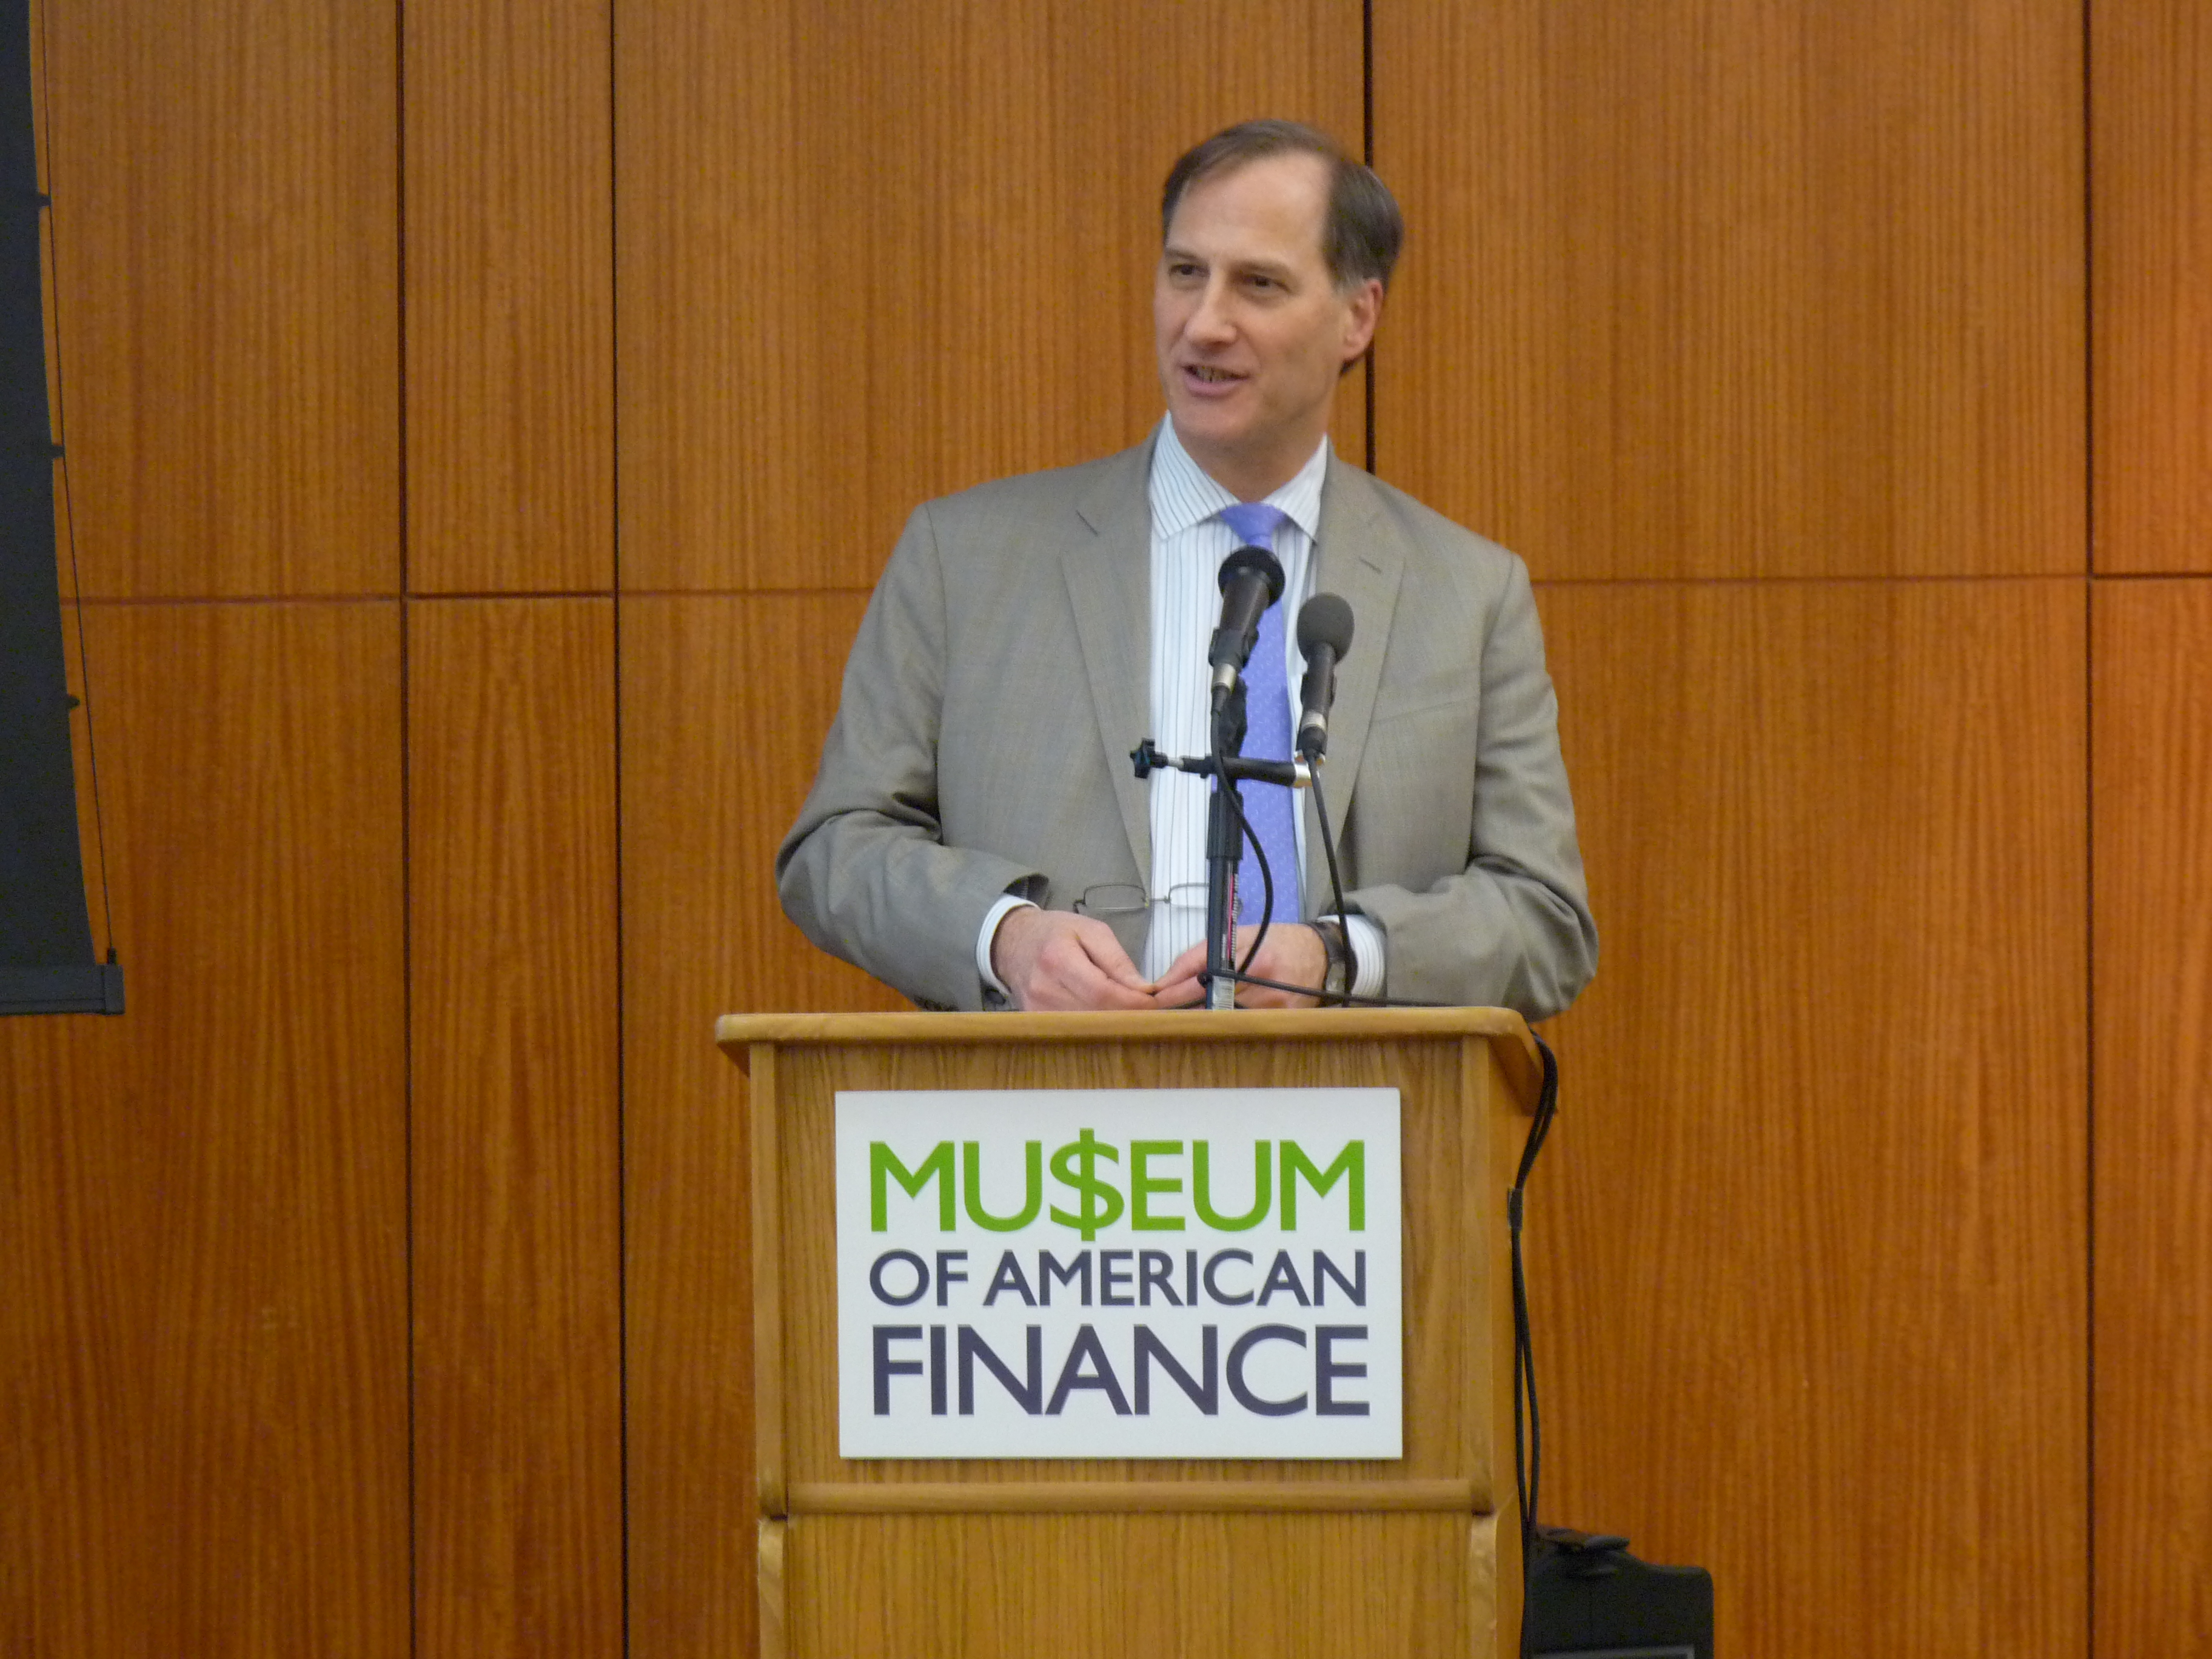 Book event at the Museum of American Finance